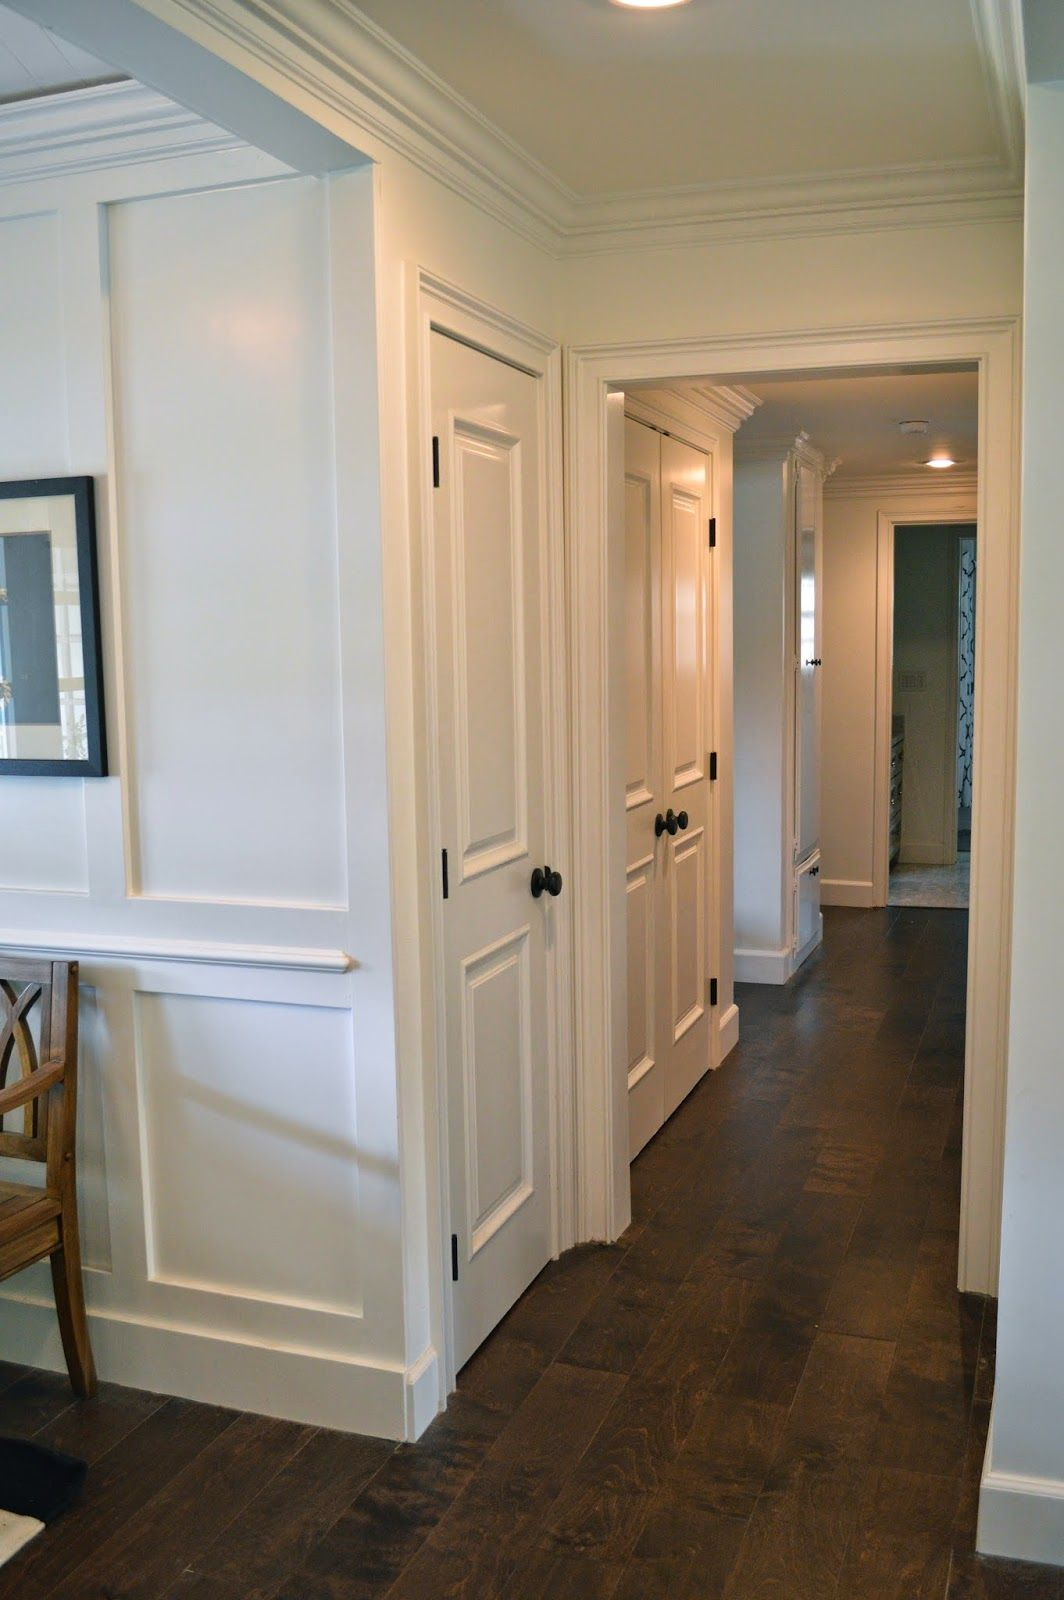 black door knobs. The Cape Cod Ranch Renovation: Great Room \u0026 Entry Like Black Knobs On Doors Door O